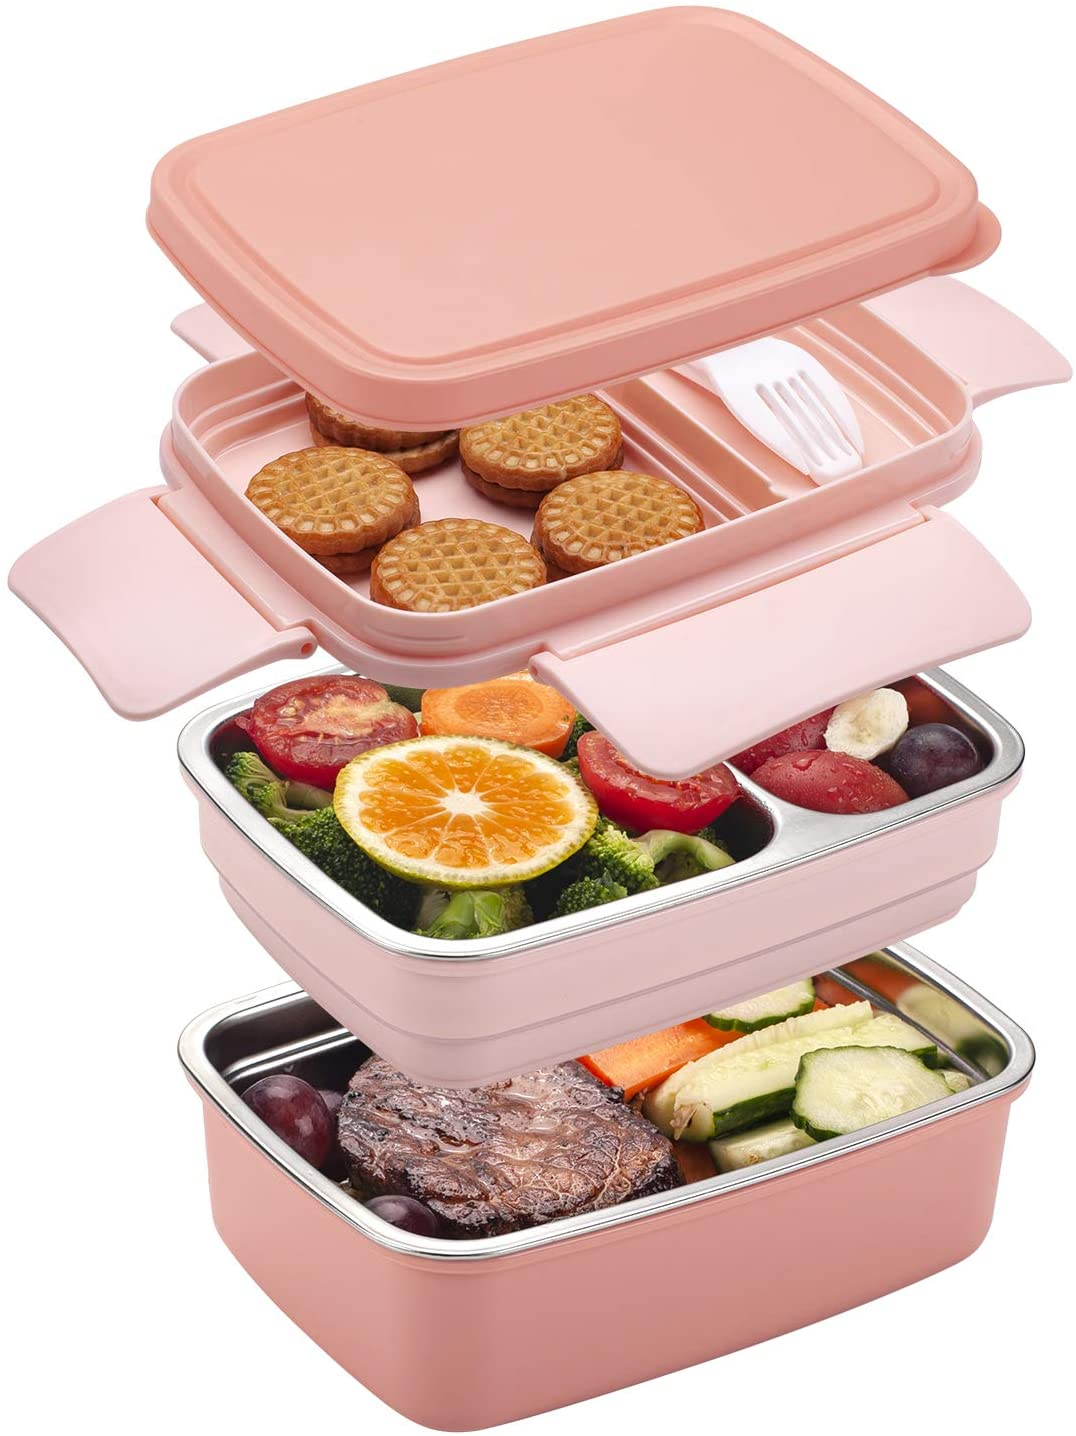 Freshmage Stainless Steel Bento Box for Adults & Kids, Leakproof Stackable Large Capacity Dishwasher Safe Lunch Container with Divided Compartments, Pink